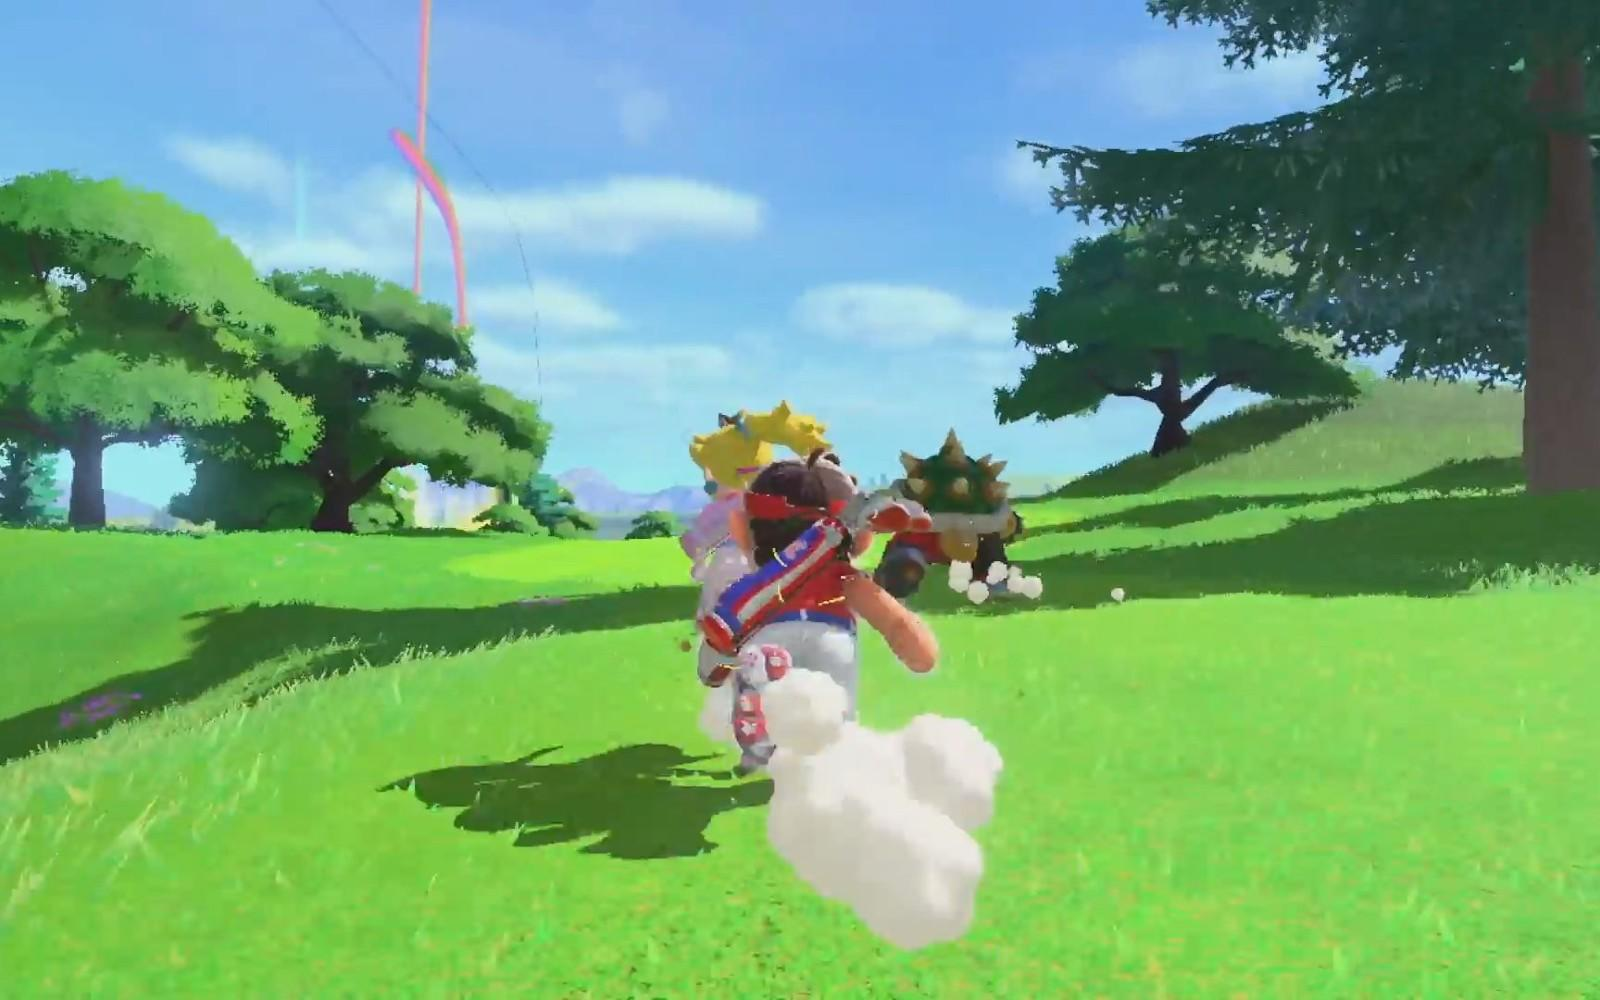 'Mario Golf: Super Rush' comes to Nintendo Switch on June 25th